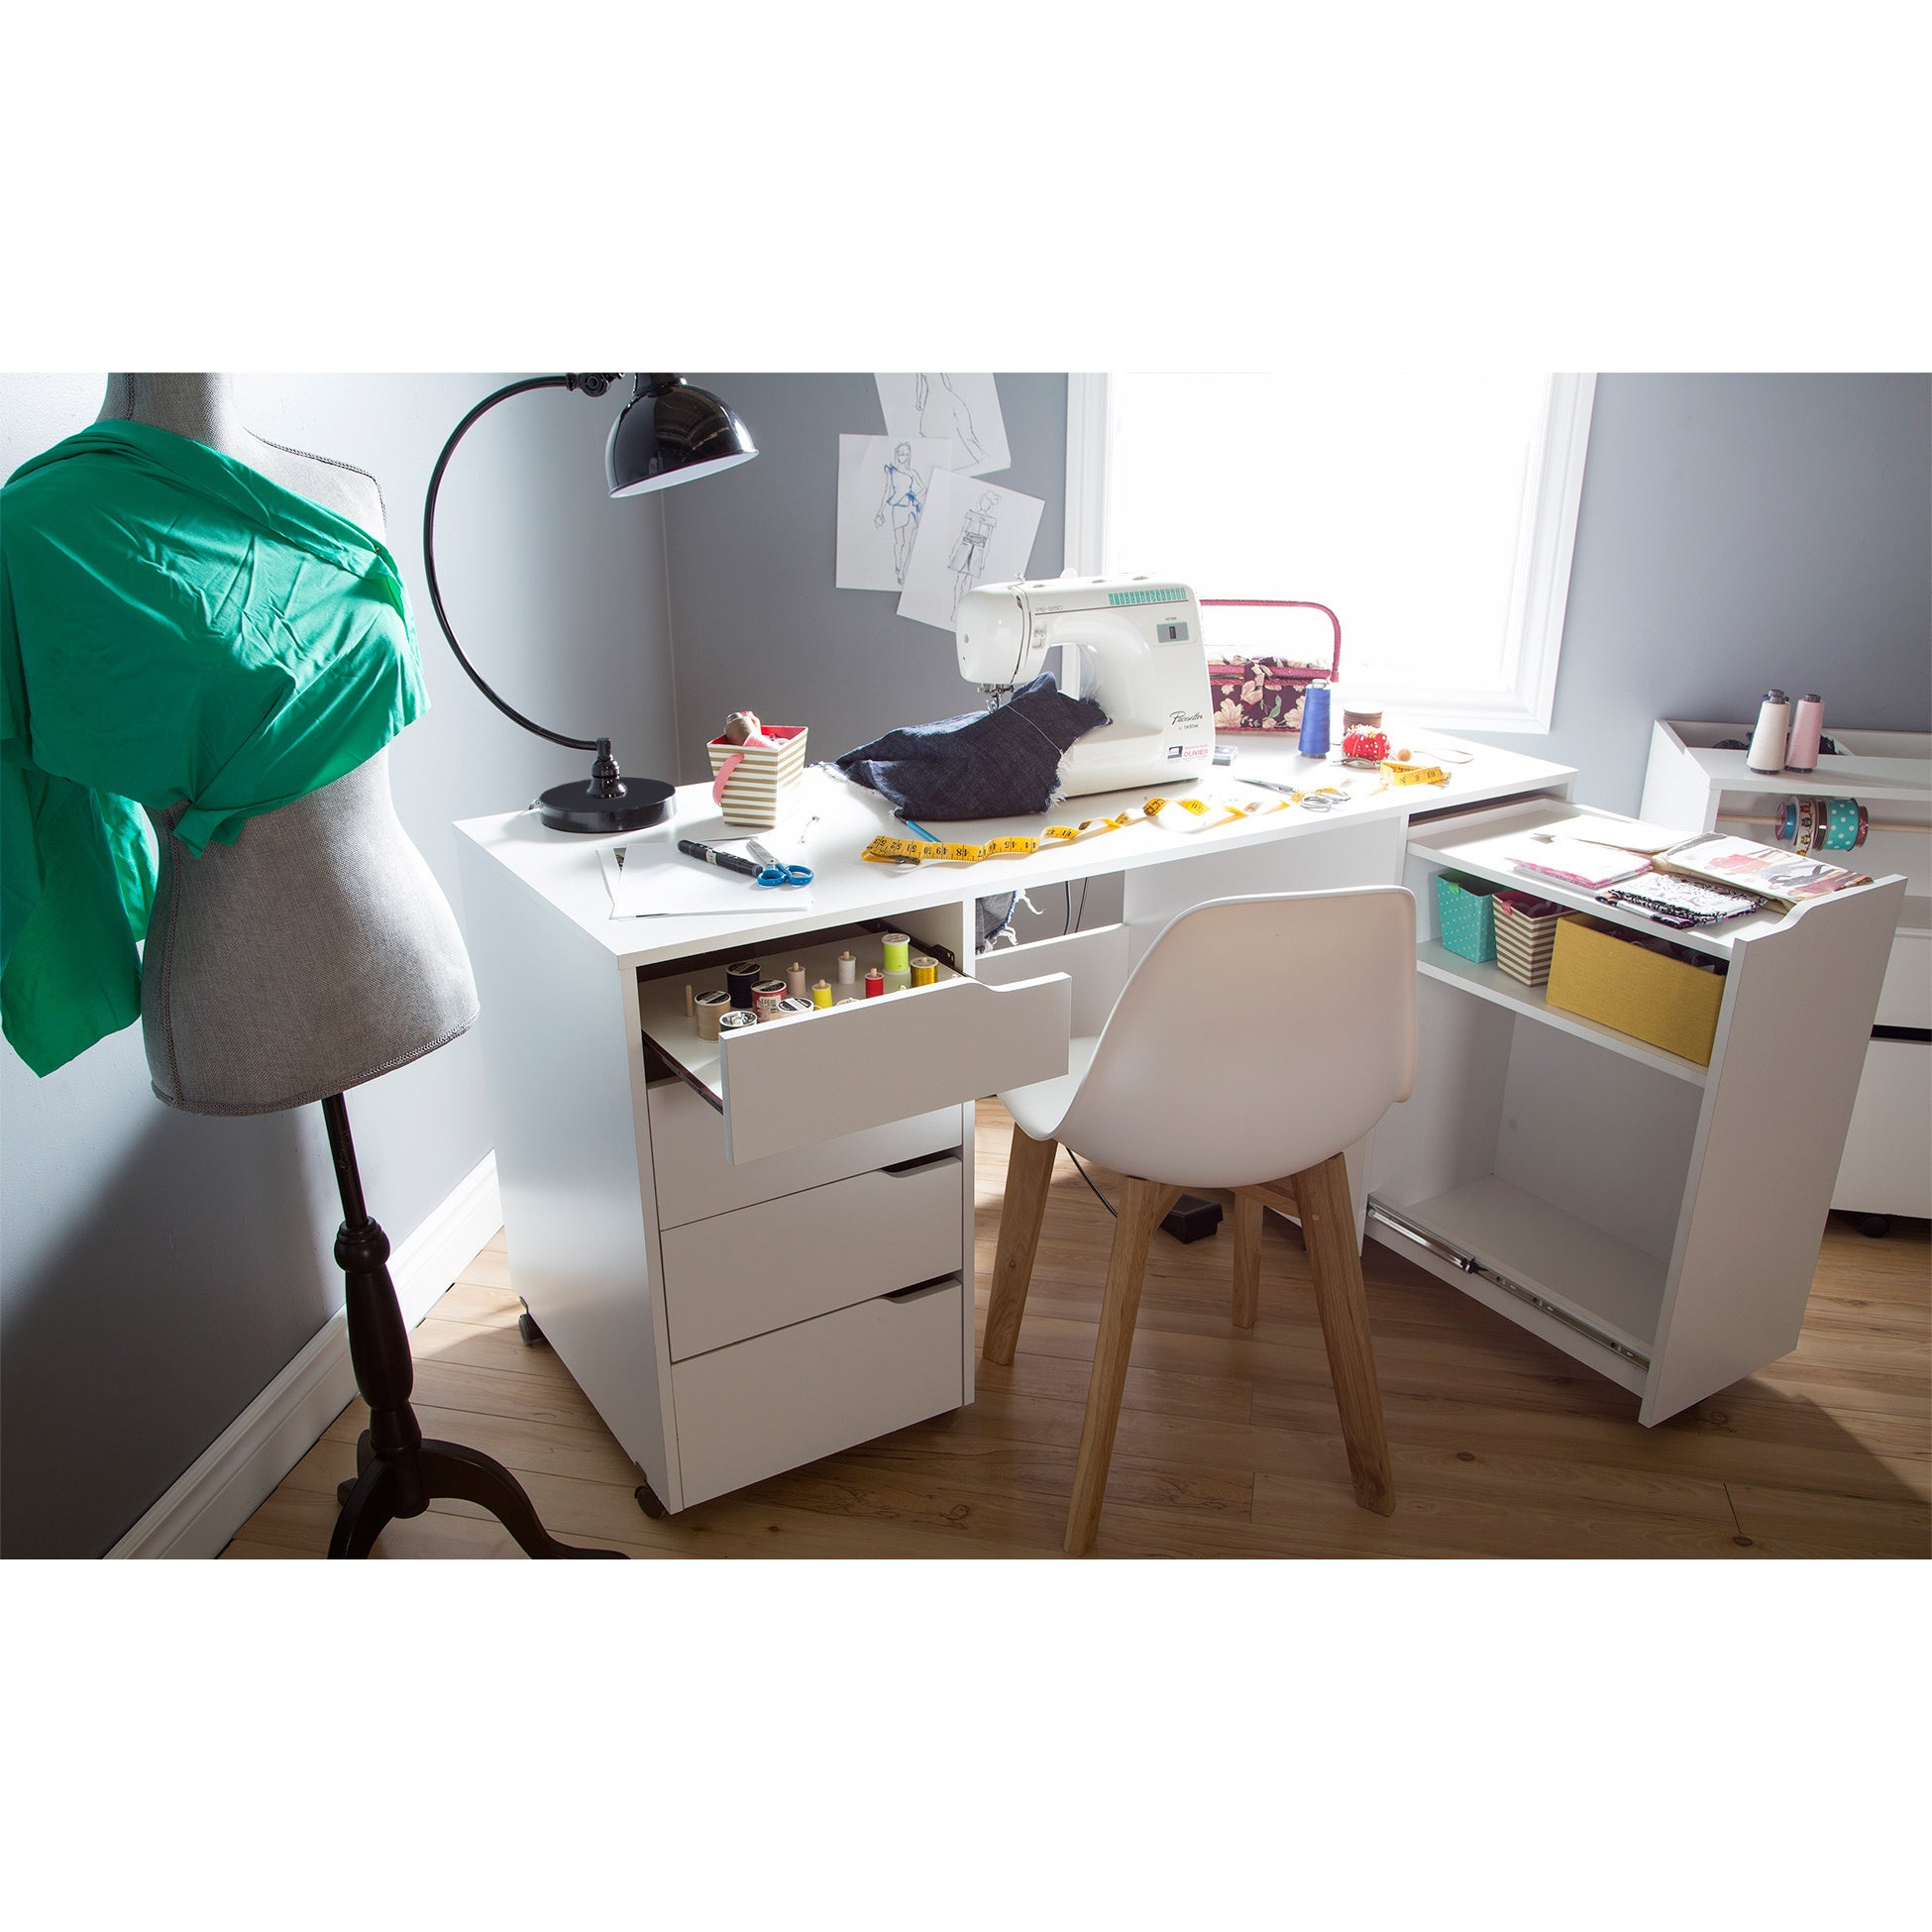 South Shore Crea Rolling Sewing Machine and Craft Table - Free Shipping  Today - Overstock.com - 18104315